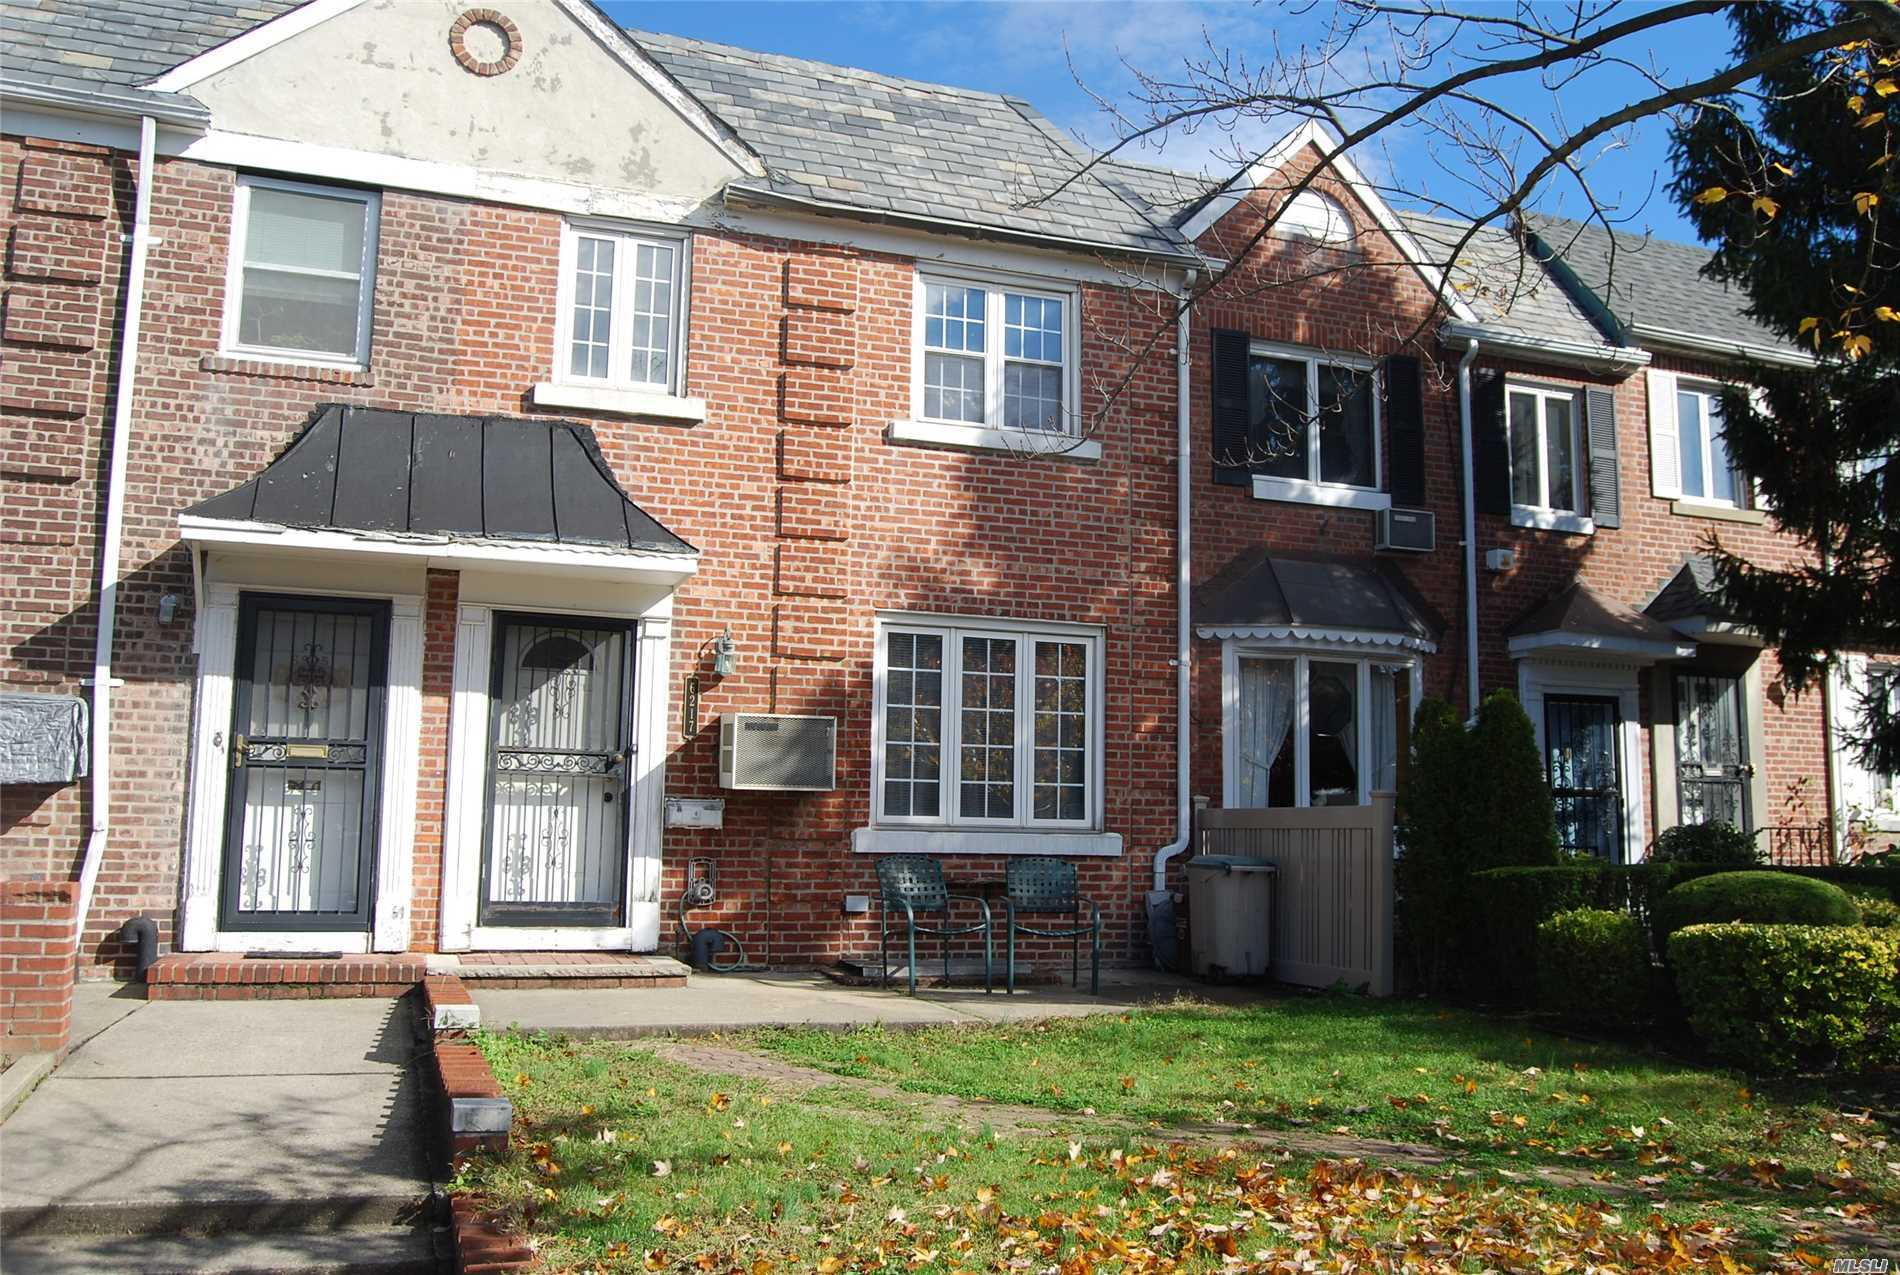 Nice Sunny And Bright Brick 1 Family That Is Only 1 Block From 55 Acre Juniper Park And Express Bus To Manhattan, House Has Beautiful Wood Floors Finished Basement And Has Rear Patio With Door Going From Formal Dining Room. Home Also Has A Garage . Location Location Location,